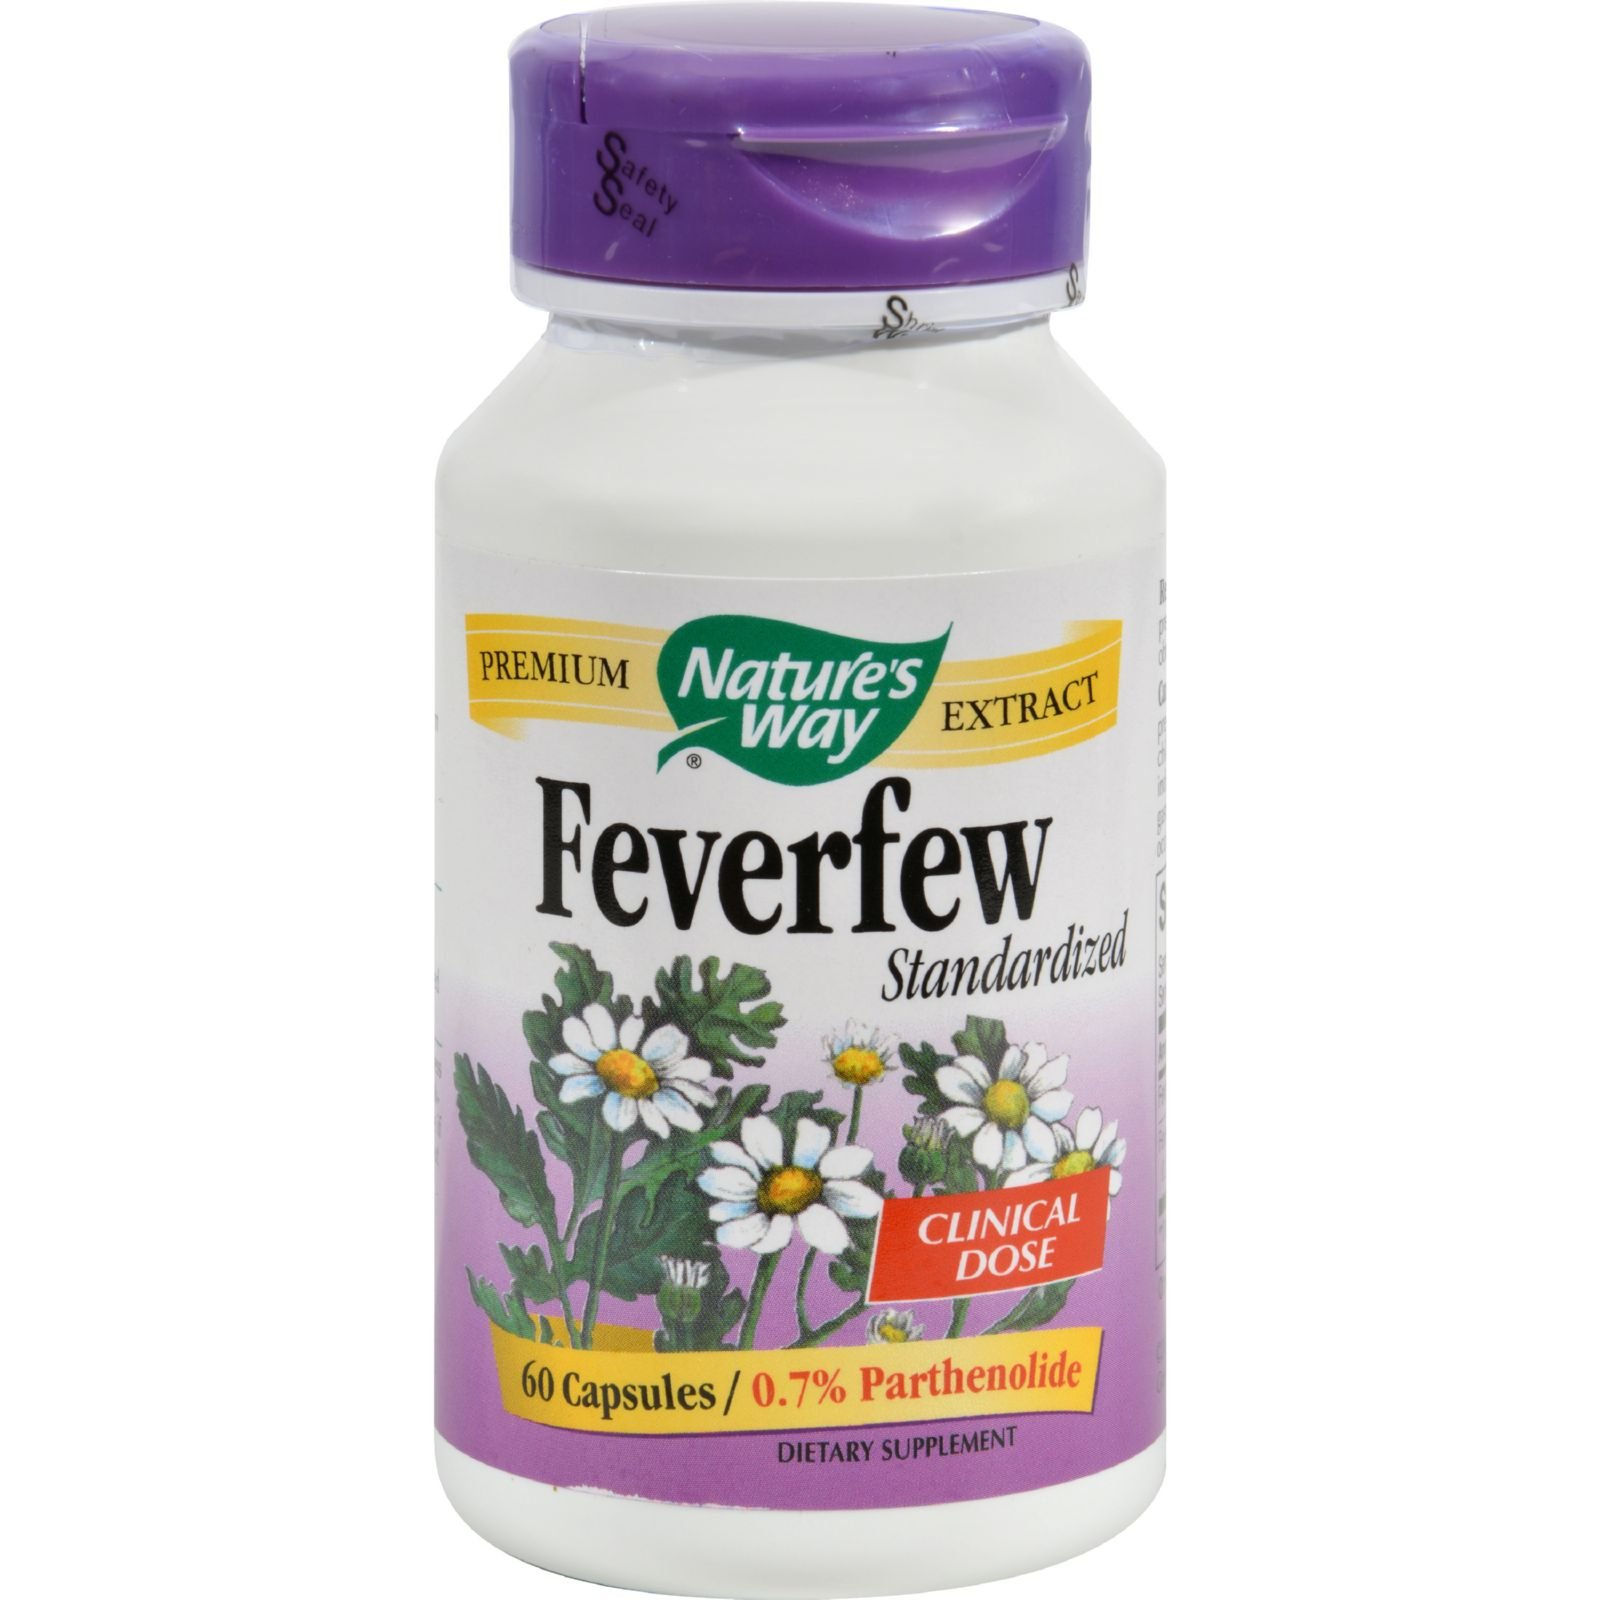 Feverfew Standardized Extract Nature's Way 60 Caps